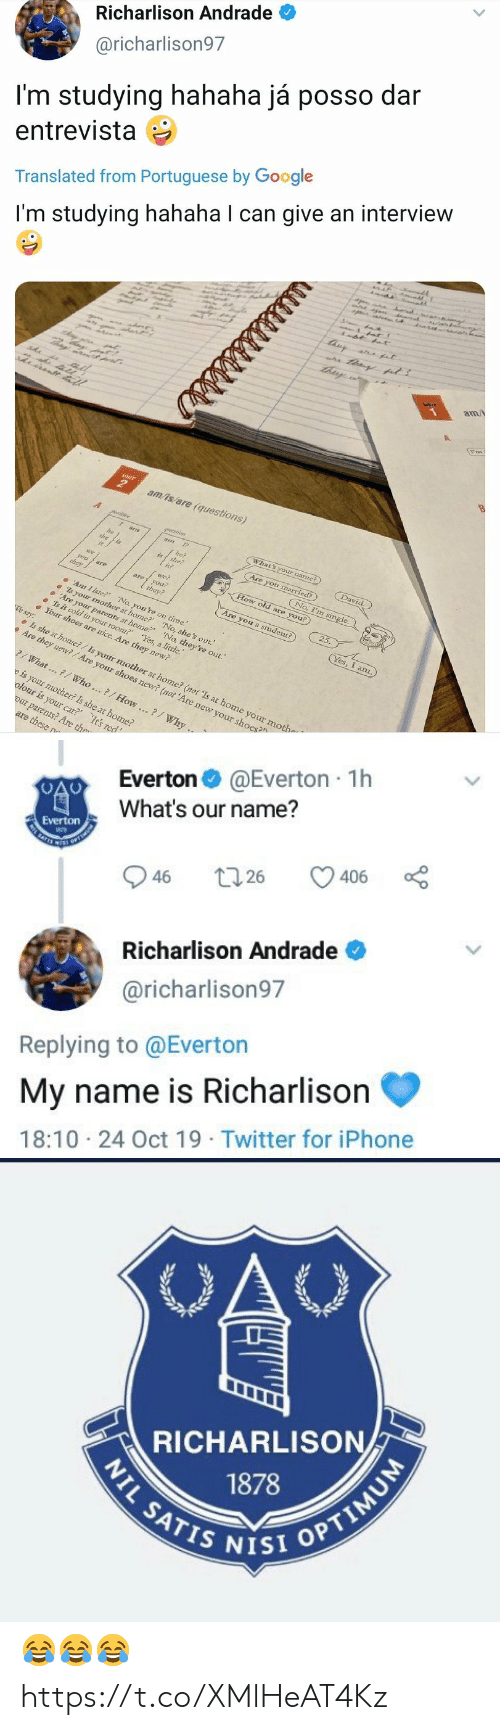 "Your Mother: Richarlison Andrade  @richarlison97  I'm studying hahaha já posso dar  entrevista  Translated from Portuguese by Google  r  I'm studying hahaha I can give an interview  tisy  a at  am/  UNIT  am/is/are (questions)  A  What's your namme?)  am  David.  he?  she?  Are you married?)  is  No, I'm single  we  How old are you?  nai  aoyou  they?  they  25.  Are you a student?)  Ar I late? No, you're on time.  s your mother at home? No, she's out.  Are yoar parents at home?' 'No, they're out.""  Is it cold in your room? Yes, a little.  Your shoes are mice. Are they new?  Yes, I anz.  We say:  Is she at home?/Is your mother at home? (not 'Is at home your mothe  Are they new?/Are your shoes new? (not 'Are new your shoes?  What...7/ Who..?/How..?/Why ..  e is your mother? Is she at home?  olour is your car? It's red  our parents? Are the  are these n  है ह।   @Everton 1h  Everton  What's our name?  Everton  SATES  406  26  46  Richarlison Andrade  @richarlison97  Replying to @Everton  My name is Richarlison  18:10 24 Oct 19 Twitter for iPhone  >   OAC  RICHARLISON  1878  NIL SATIS NISI OPTIMUM 😂😂😂 https://t.co/XMlHeAT4Kz"